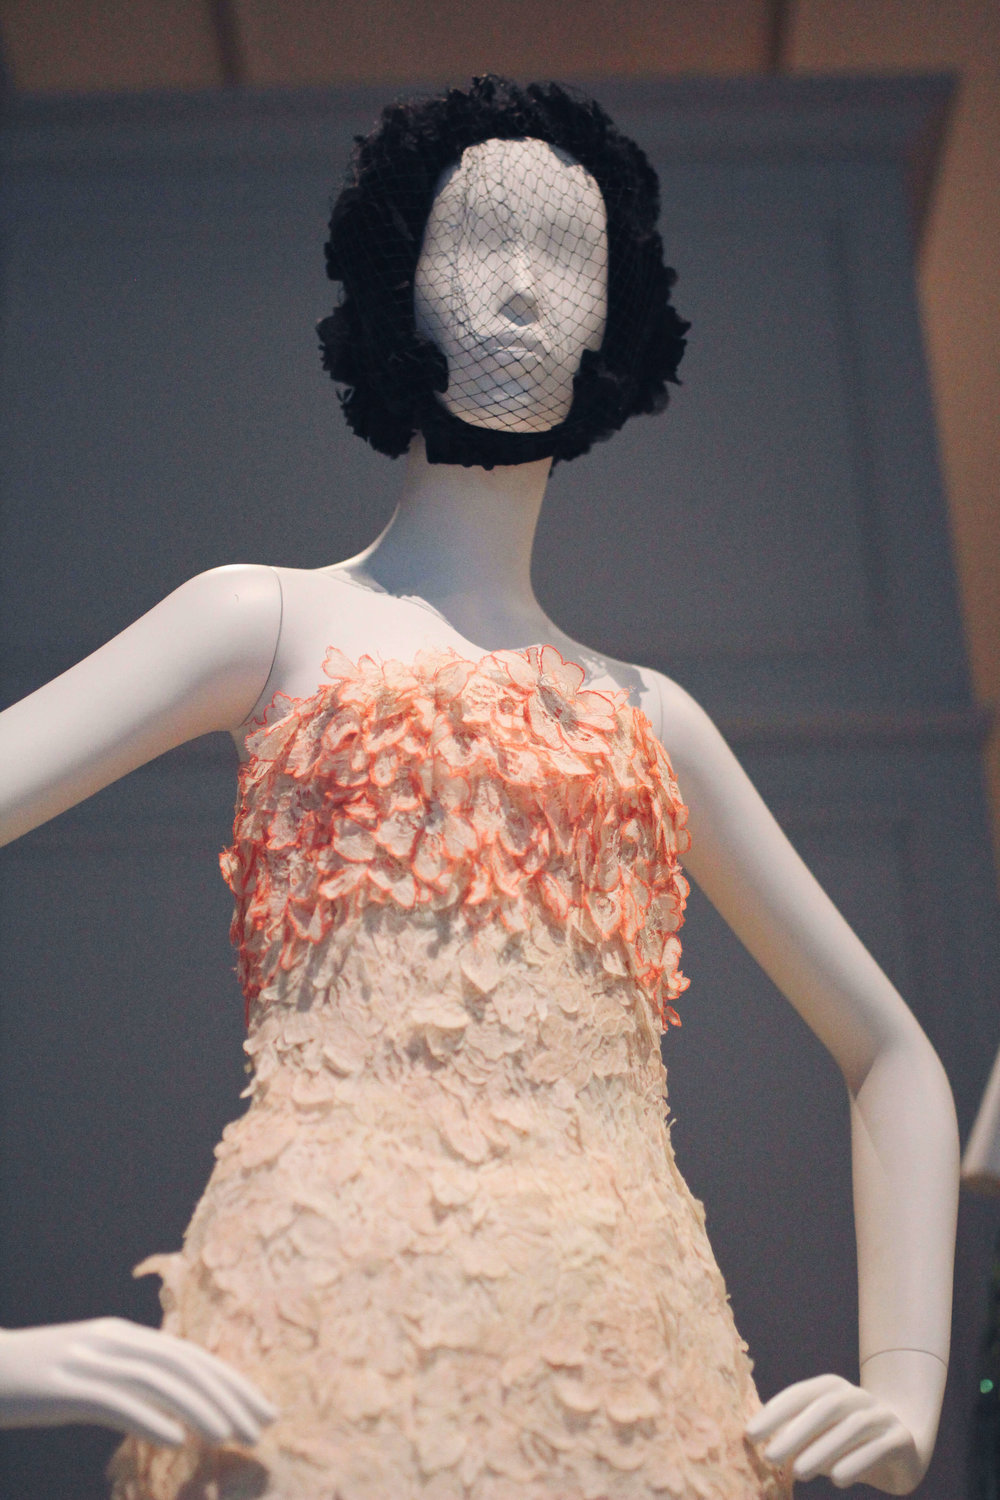 The House of Dior NGV Lei Lady Lei